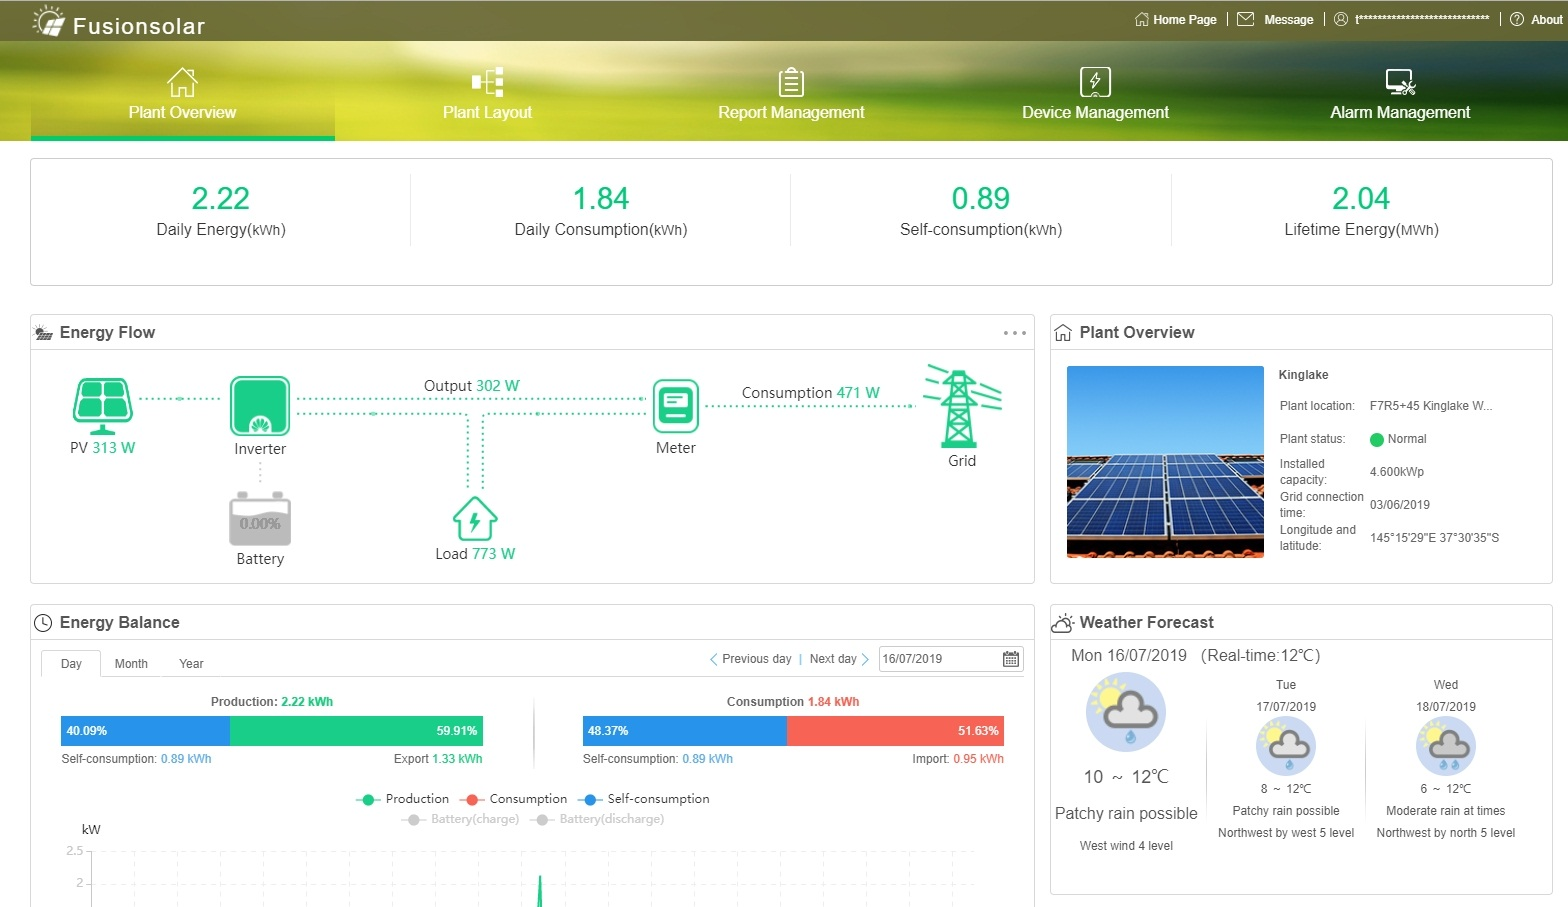 Huawei+FusionSolar+system+monitoring+portal